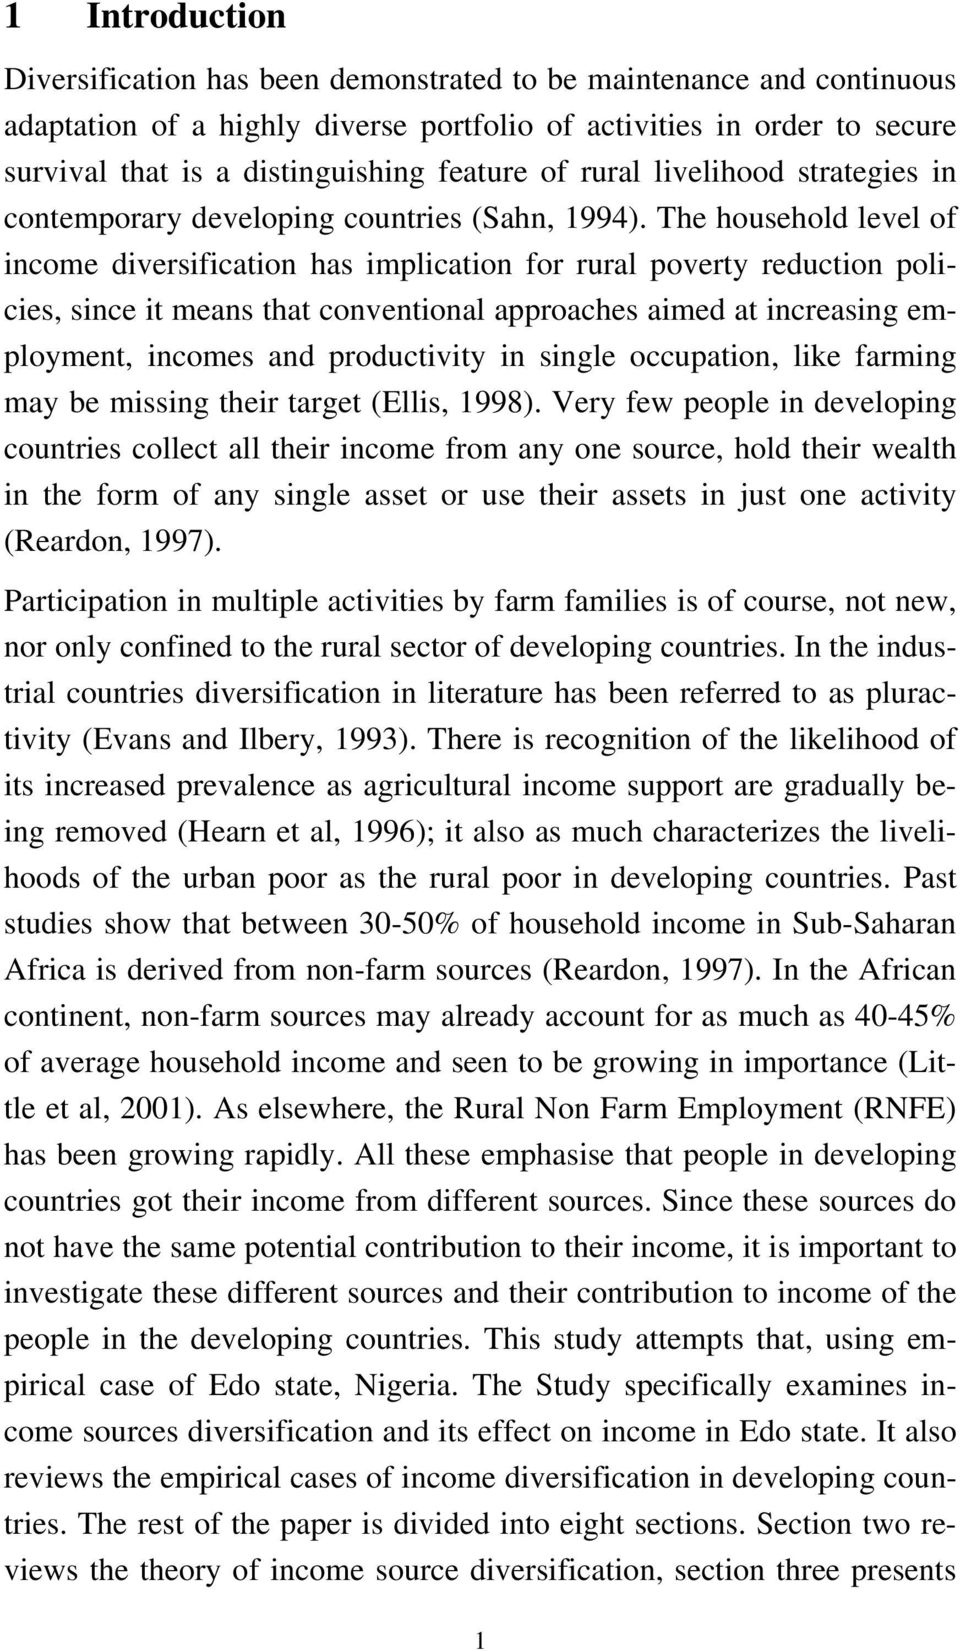 The household level of income diversification has implication for rural poverty reduction policies, since it means that conventional approaches aimed at increasing employment, incomes and